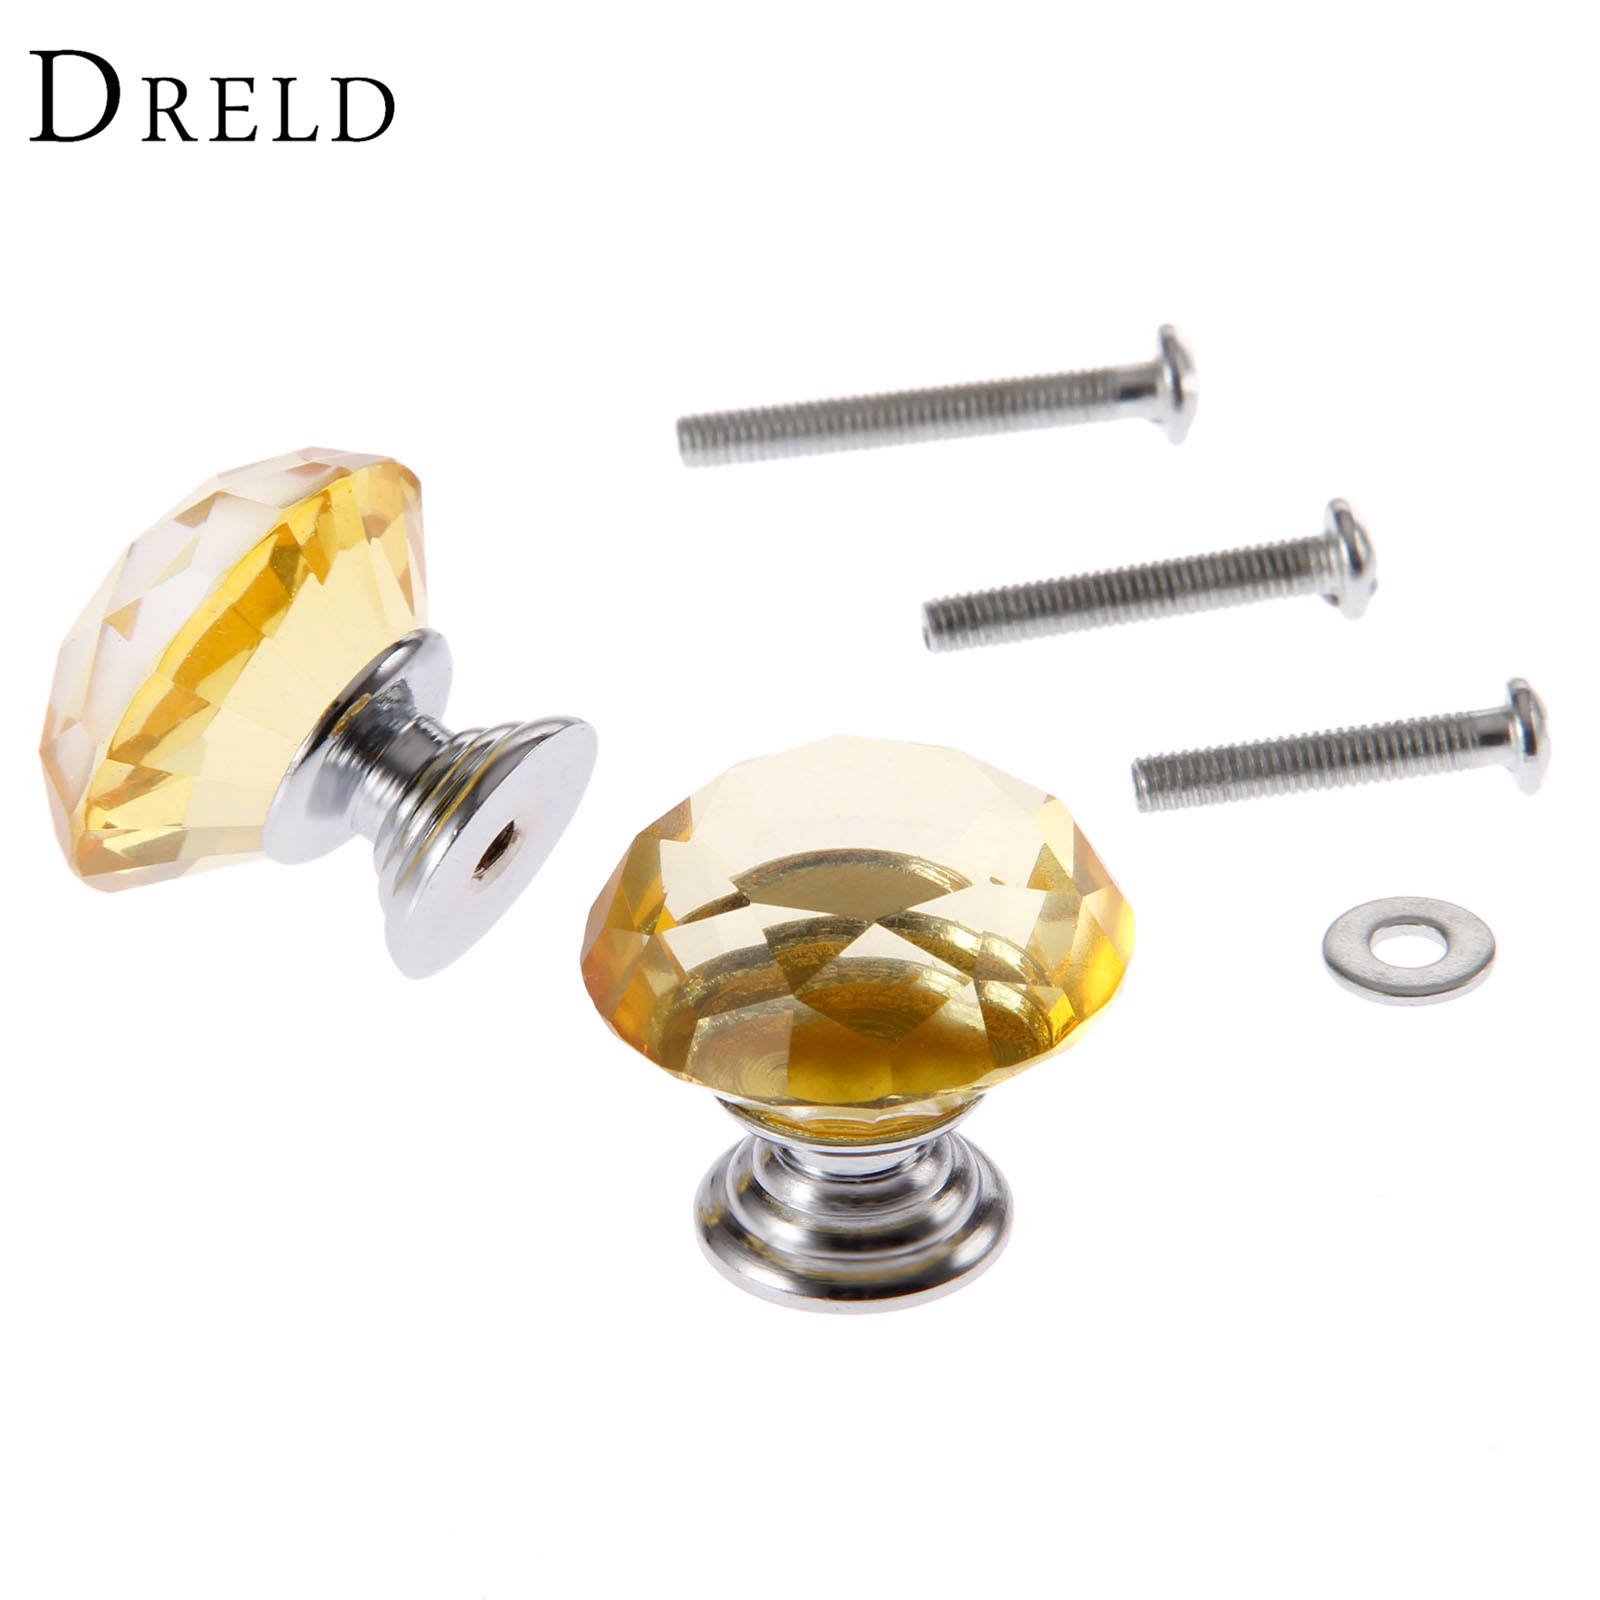 DRELD 2Pcs 30mm Diamond Crystal Drawer Pulls Glass Door Cabinet Wardrobe Pull Knobs Yellow Furniture Handles + 6Pcs Screws 10 pcs 30mm diamond shape crystal glass drawer cabinet knobs and pull handles kitchen door wardrobe hardware accessories